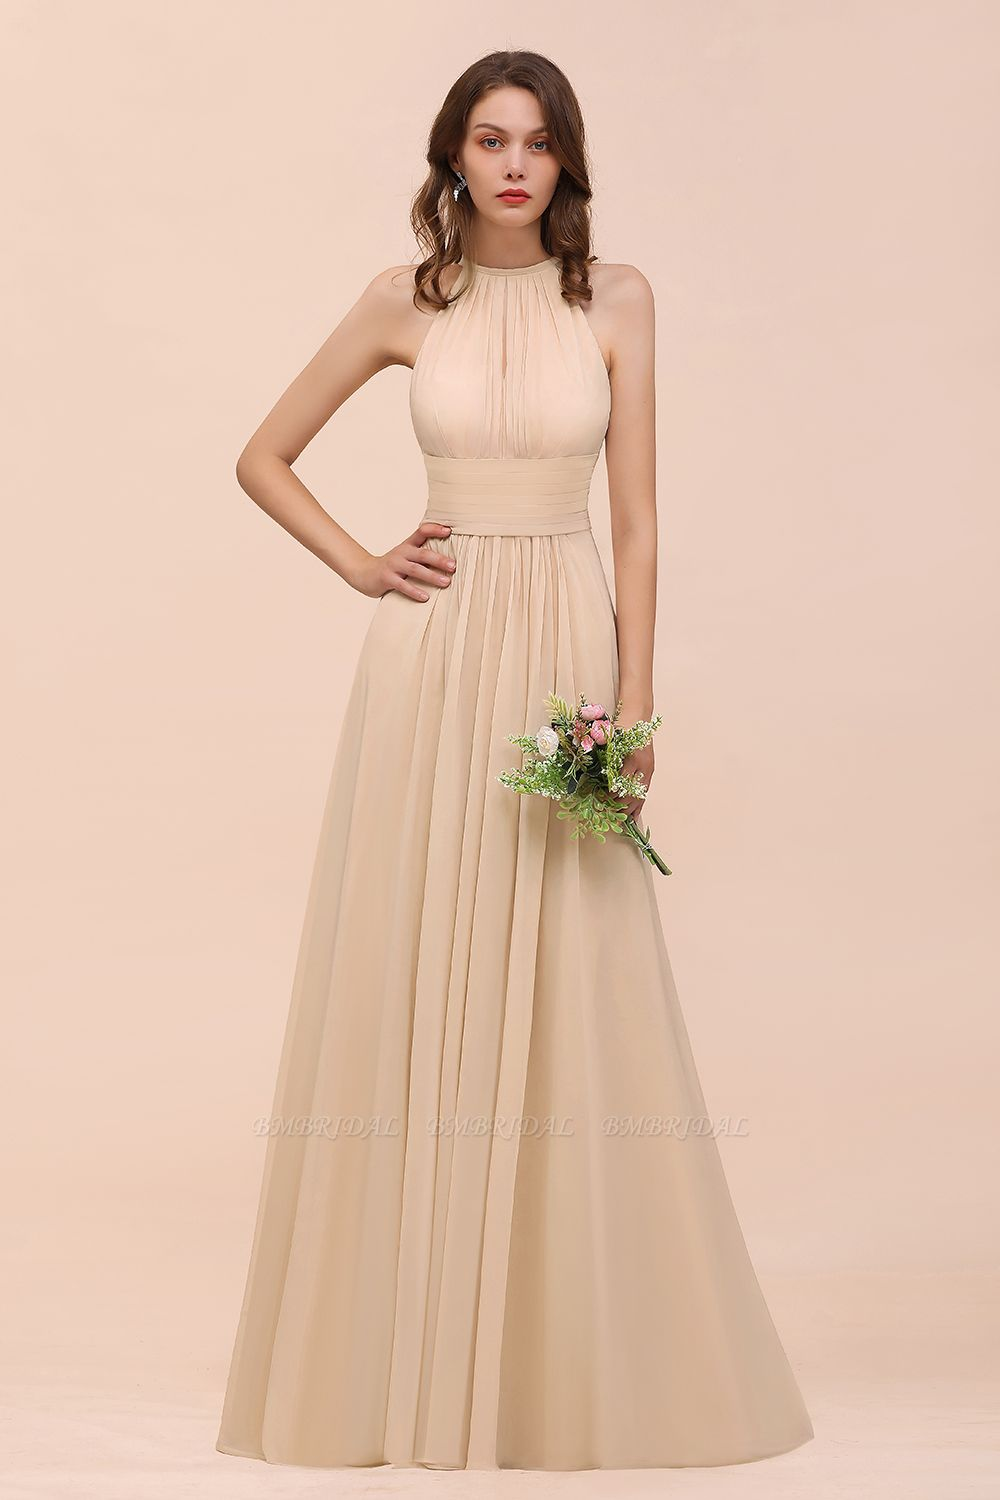 Elegant Chiffon Jewel Ruffle Champagne Affordable Bridesmaid Dress Online